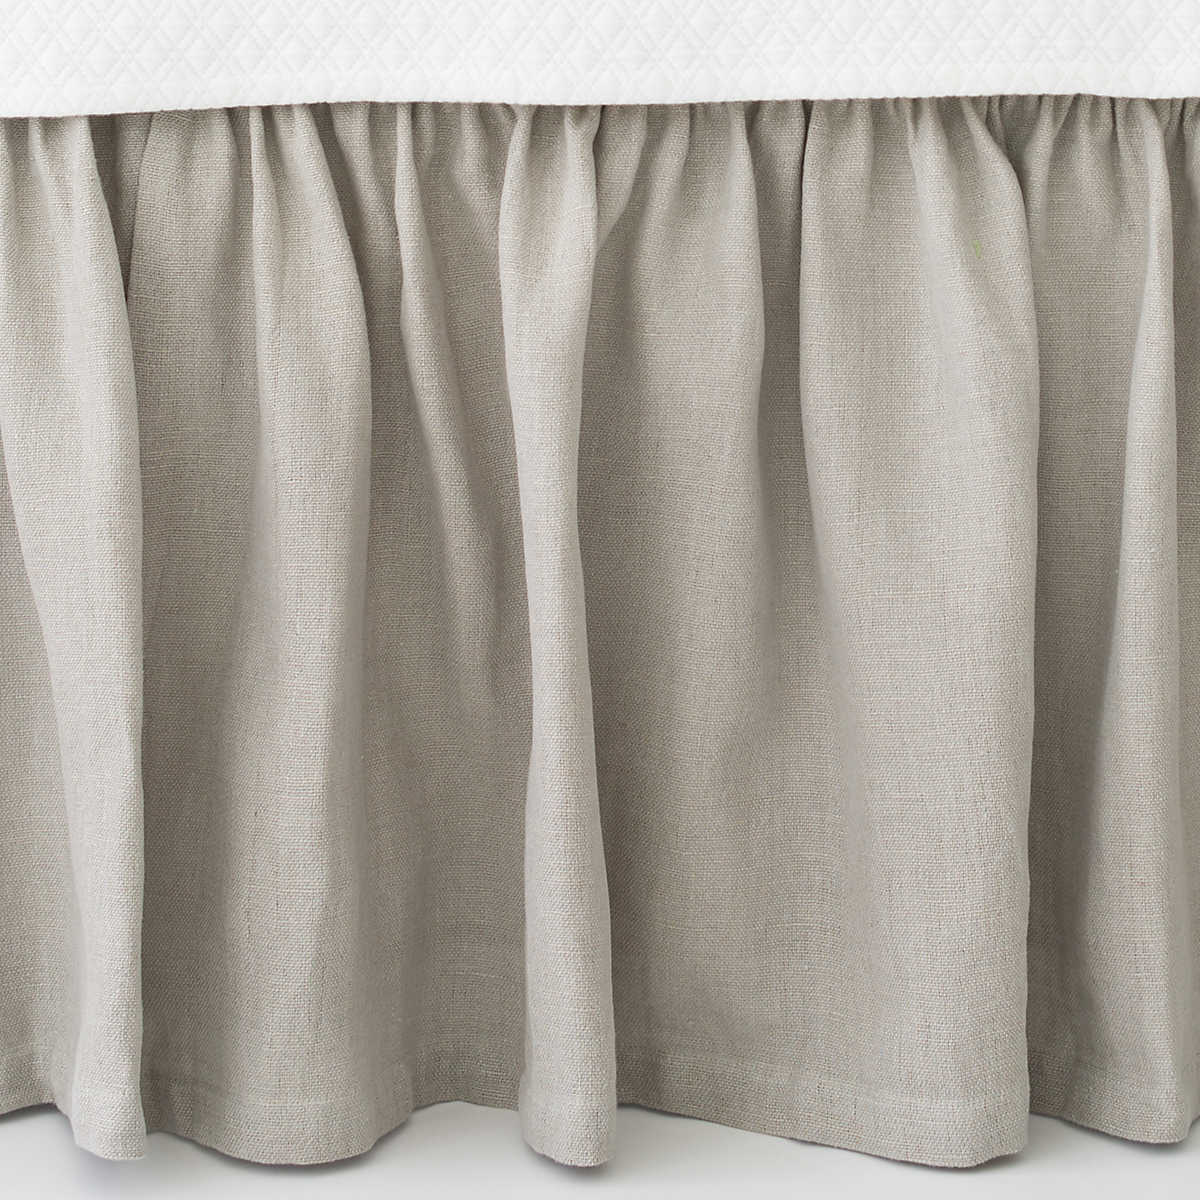 Grey Linen Bed Skirt : Stone washed linen pearl grey paneled bed skirt the outlet